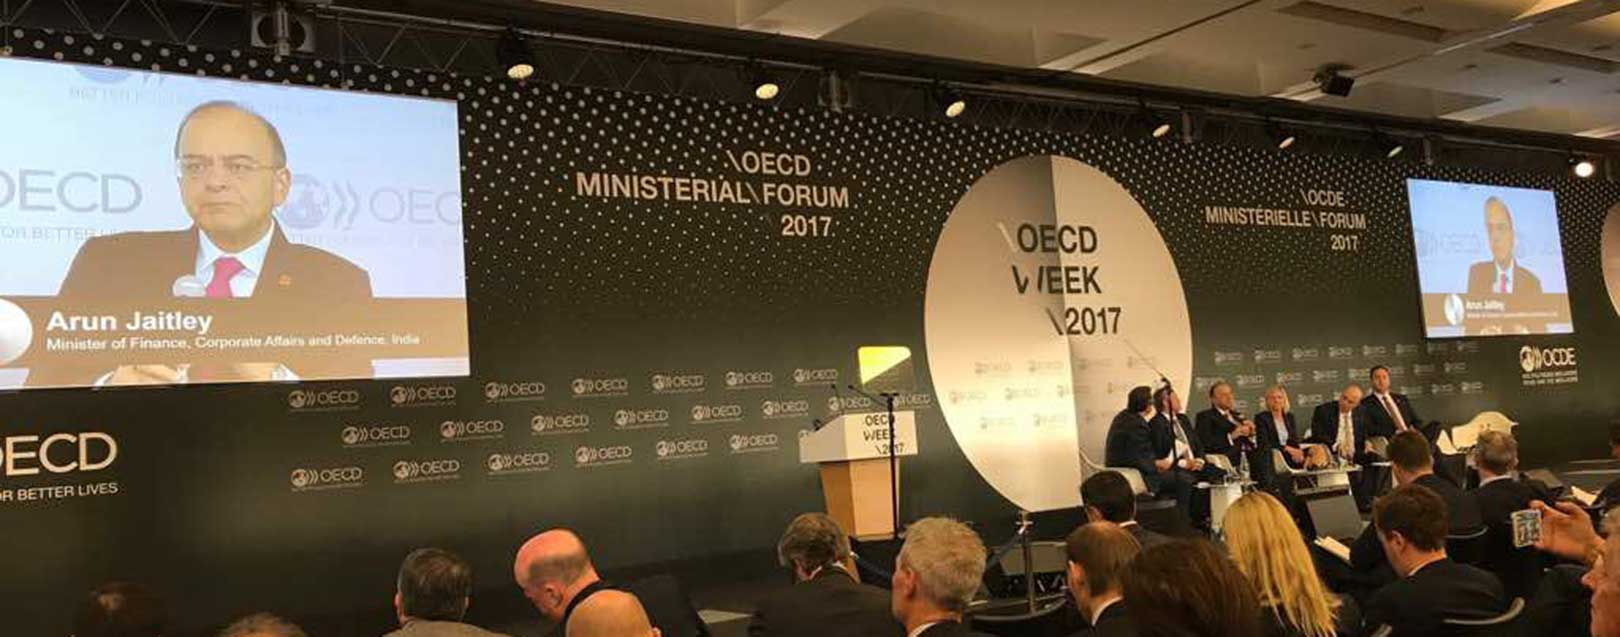 Jaitley signs OECD tax-treaty convention in Paris today